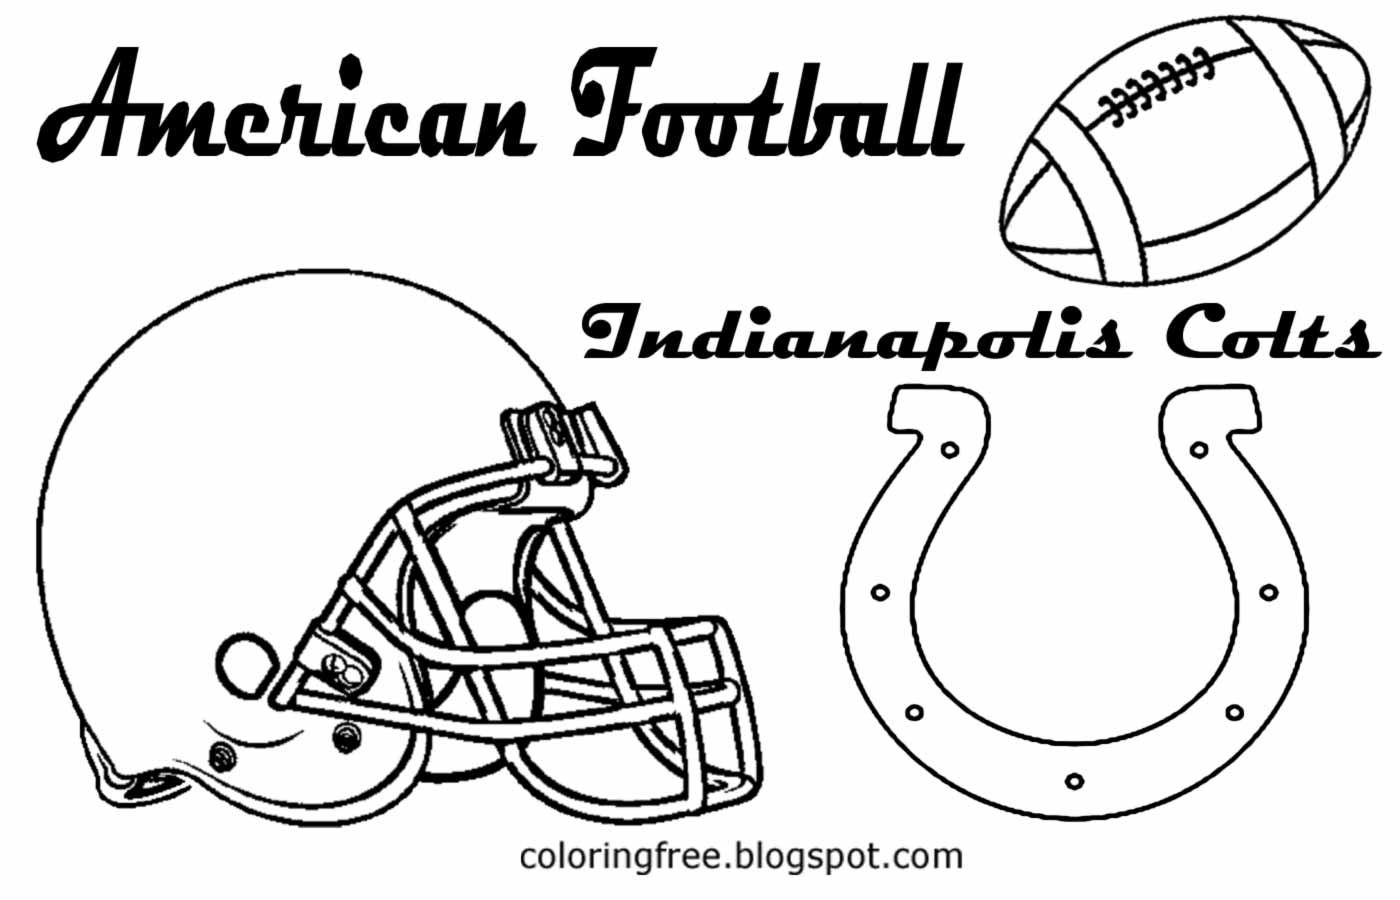 colts football helmet coloring pages - photo#19